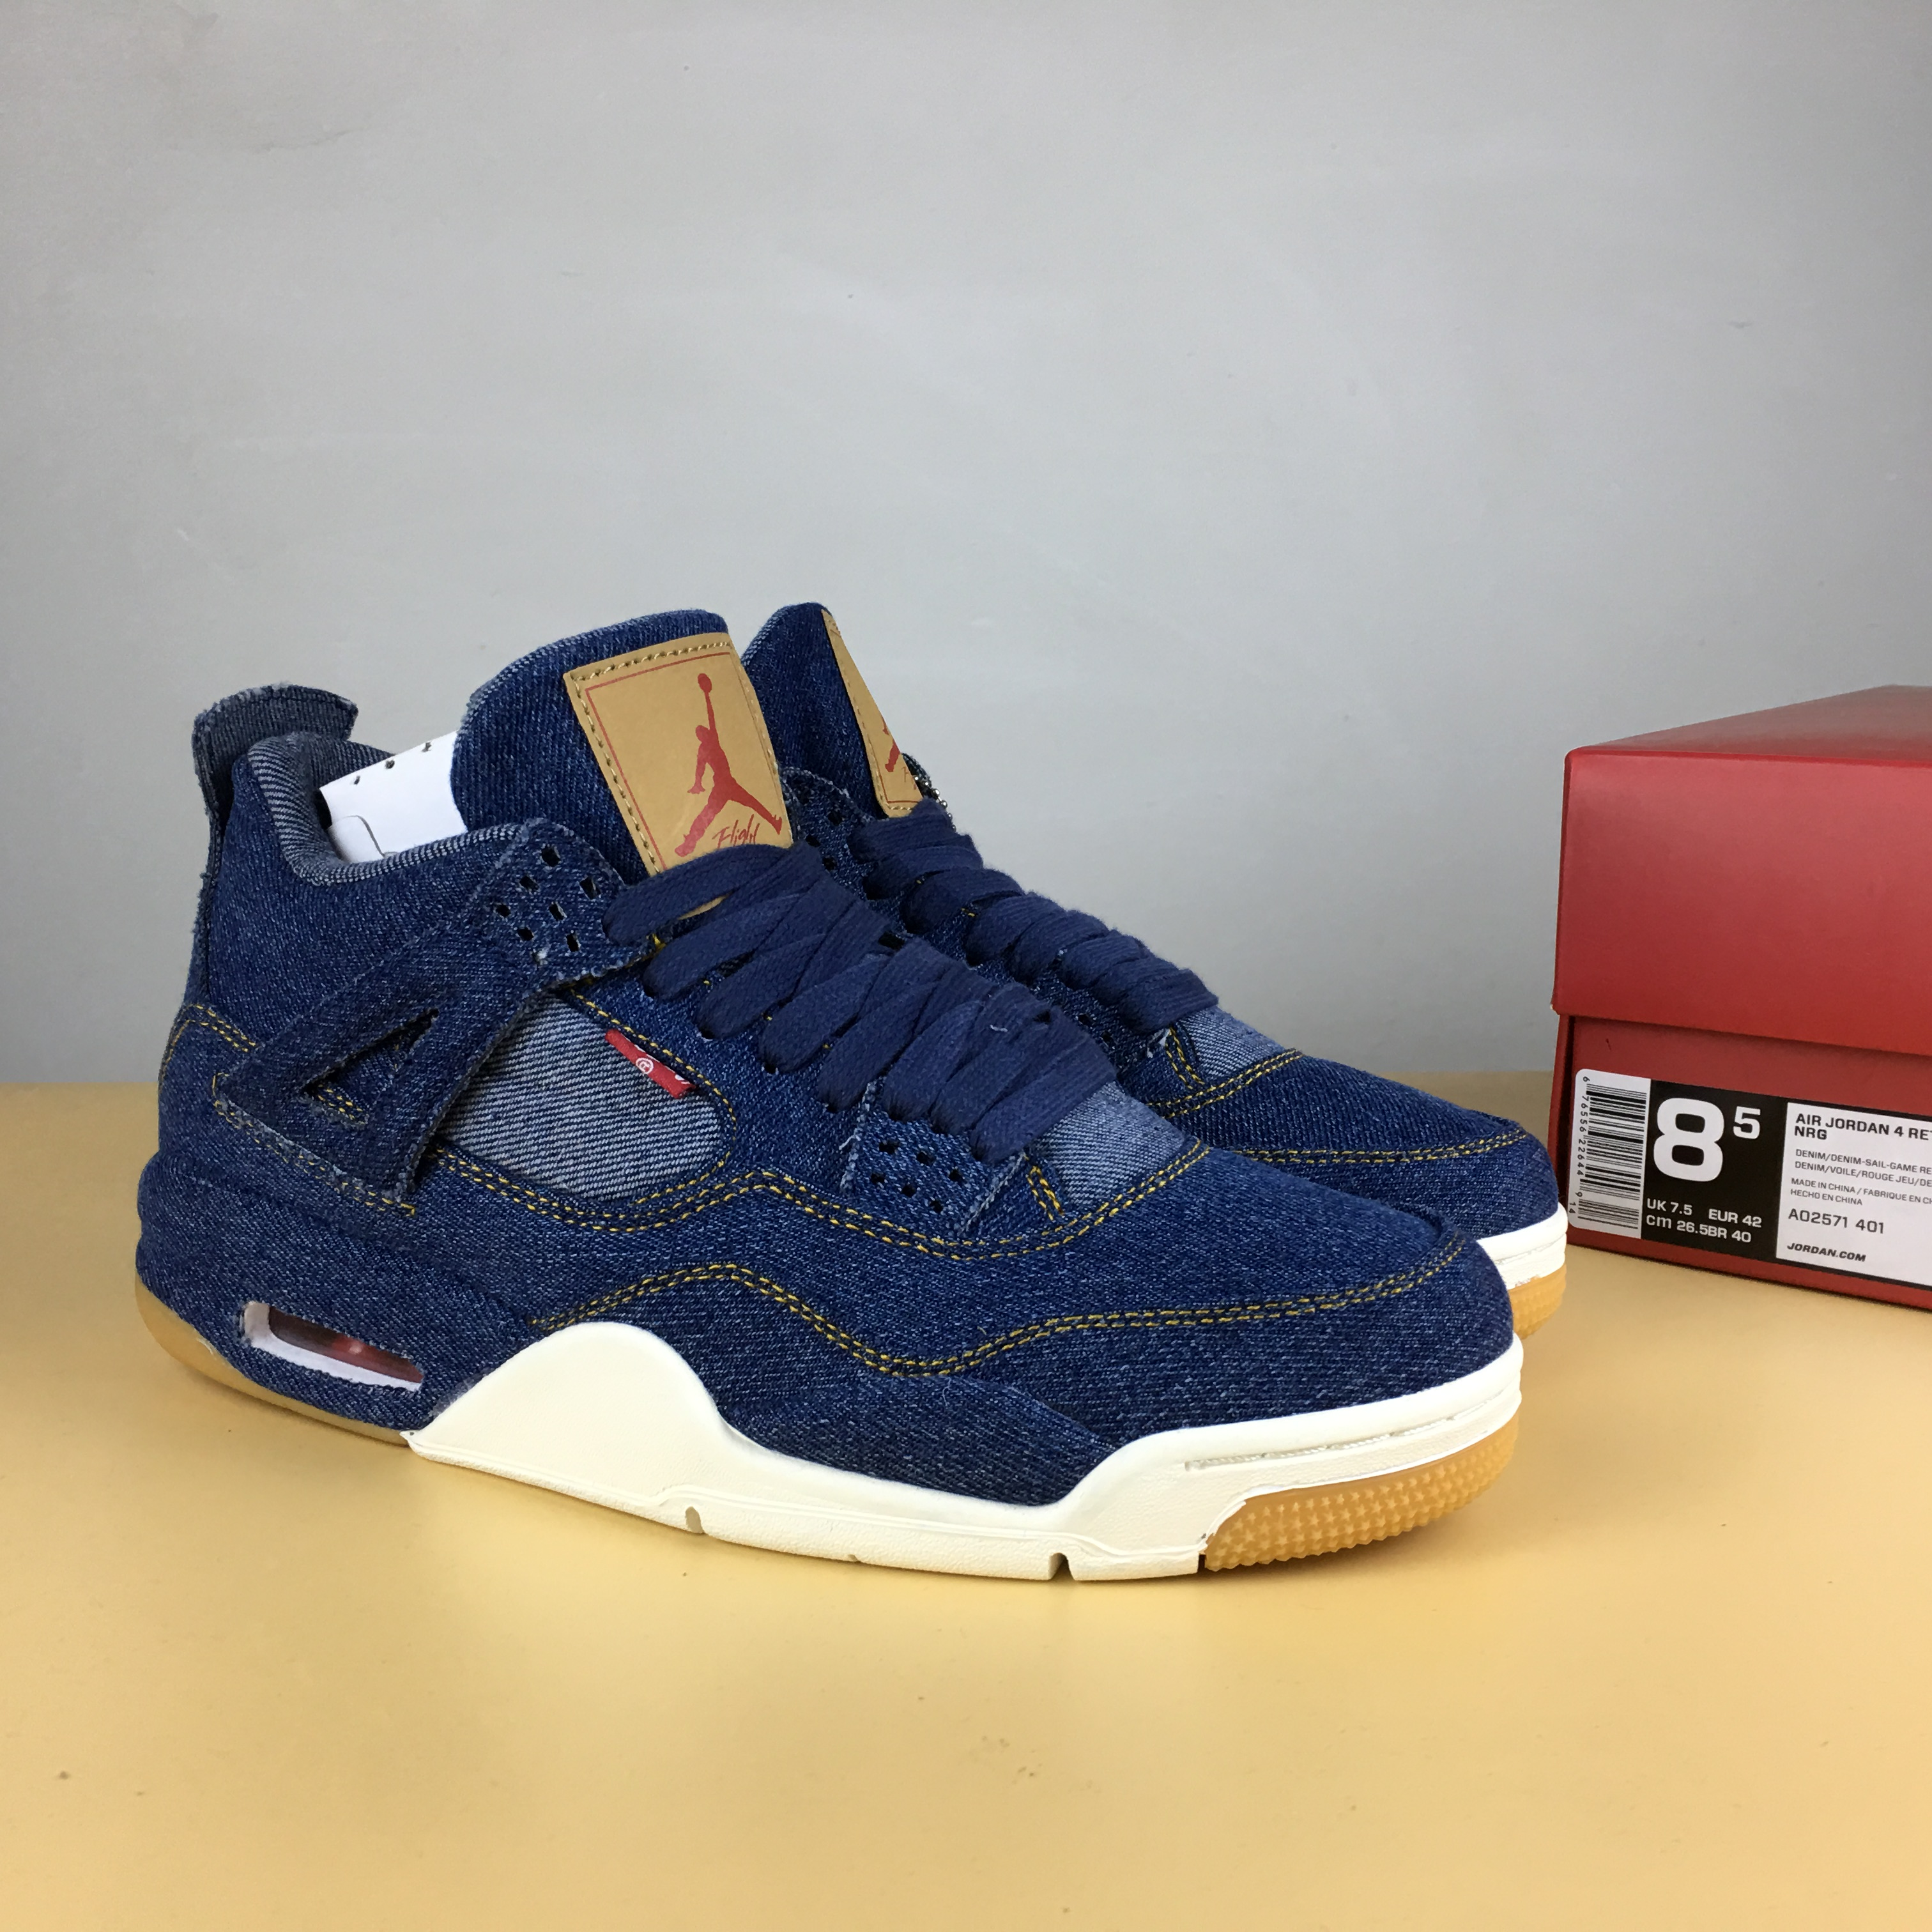 Levis x Air Jordan 4 Blue Brown Shoes